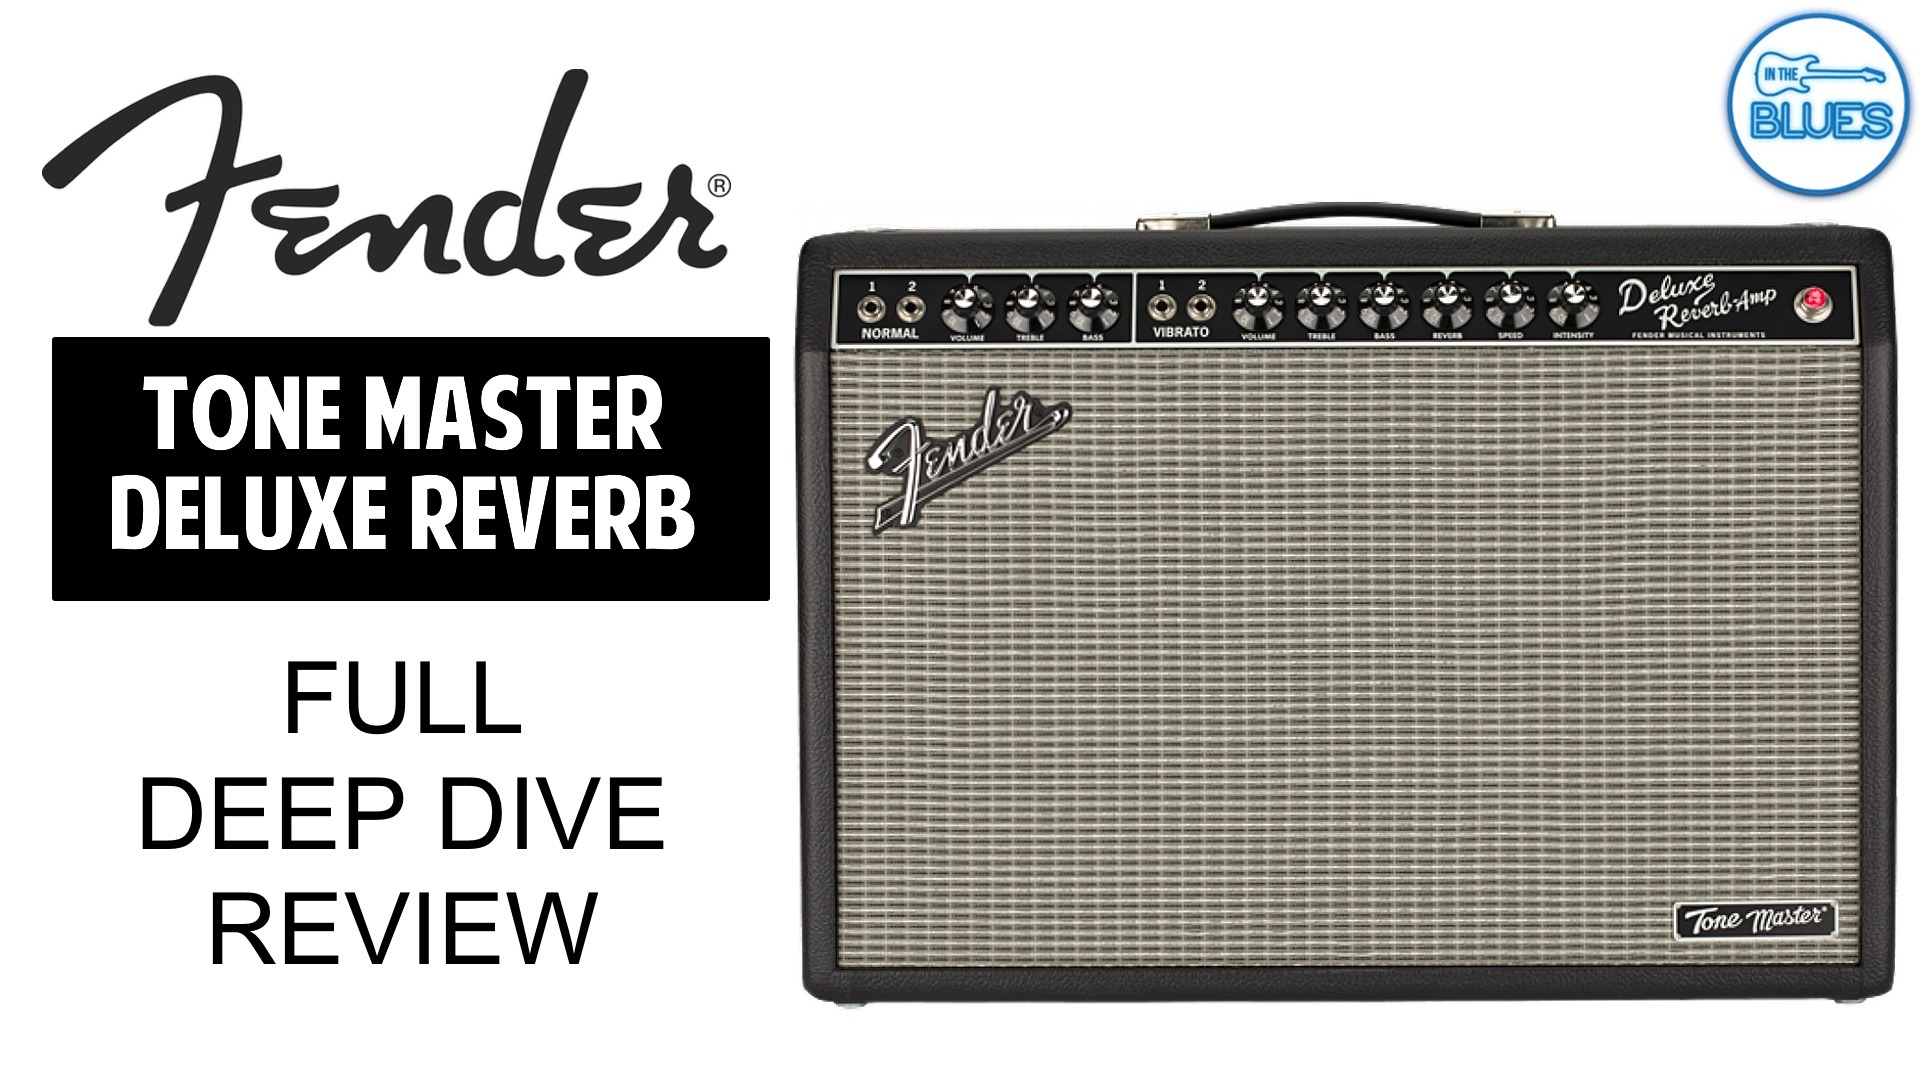 Fender Deluxe Reverb Tone Master Review